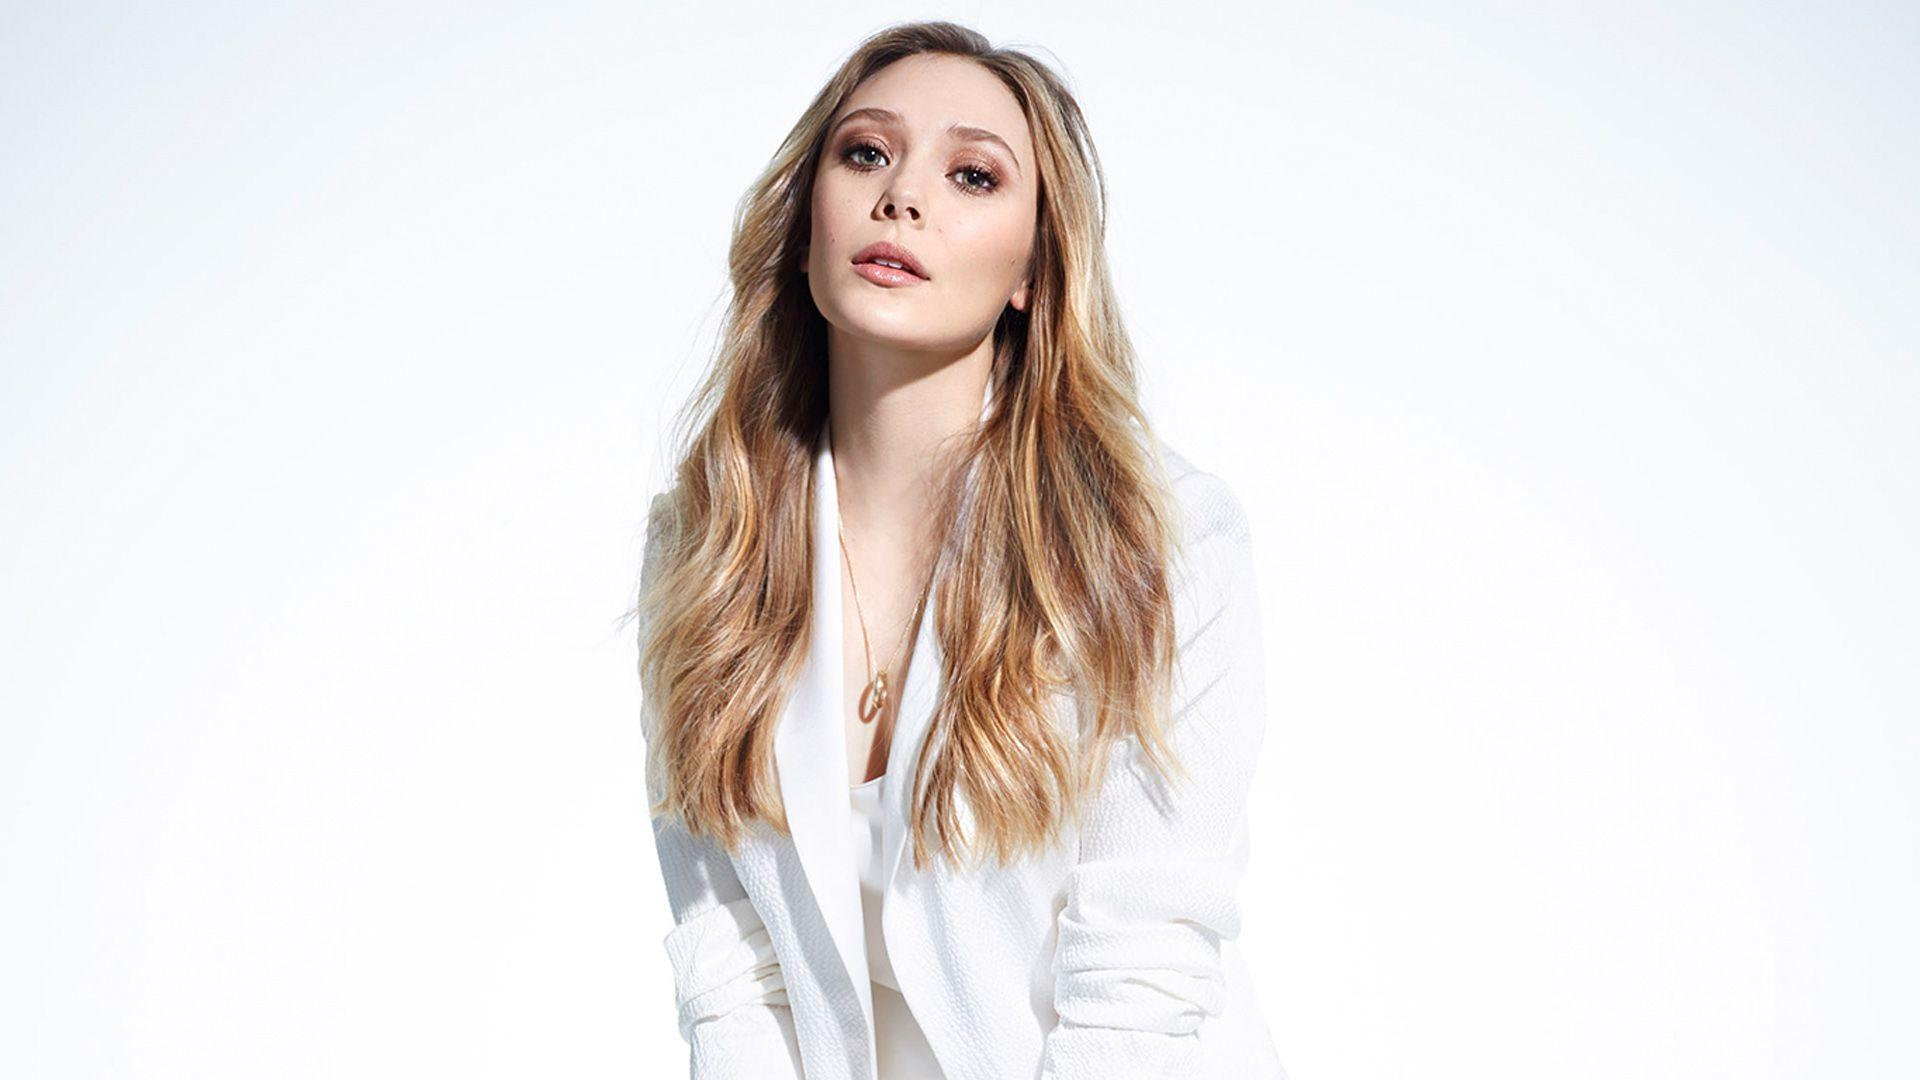 Elizabeth Olsen Wallpapers | Zoni Wallpapers